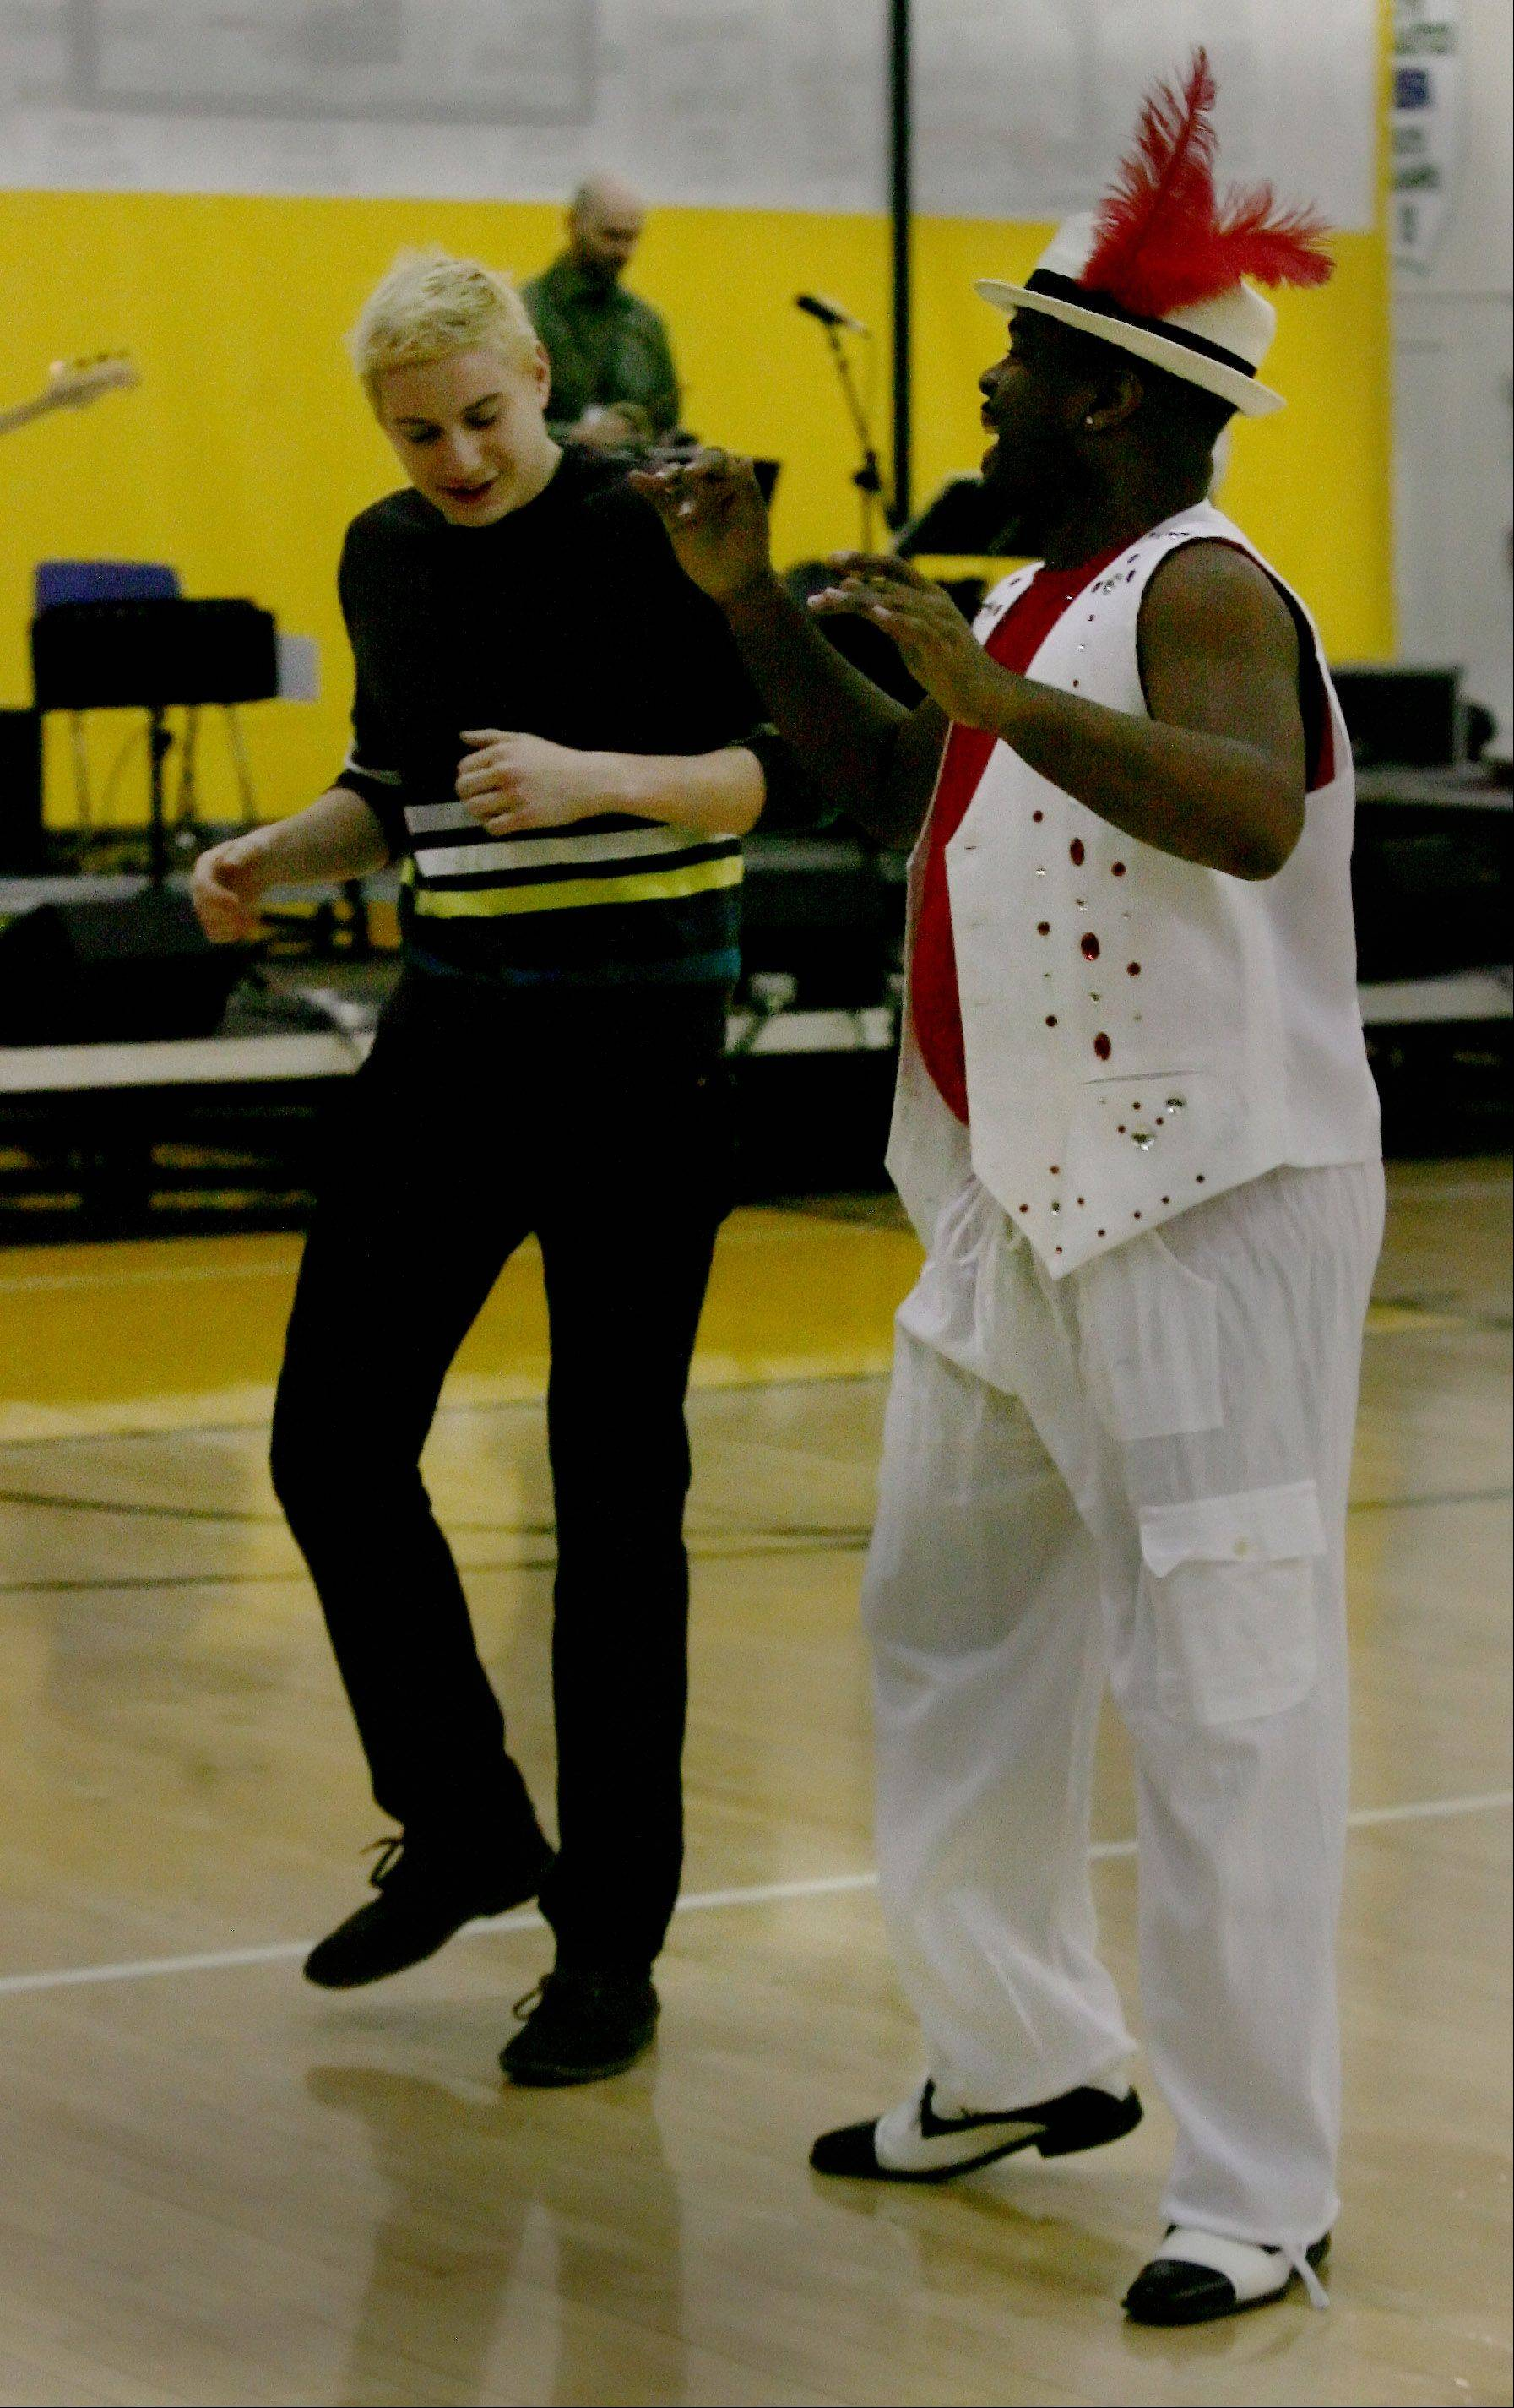 Senior Daniel Shtivelberg, left, performs with Pierre Cameron who dances with Orquestra de Samba during the Odyssey Fine Arts Festival at Stevenson High School in Lincolnshire. The two-day event brings in writers, performers and artists to broaden the exposure of the arts for students.